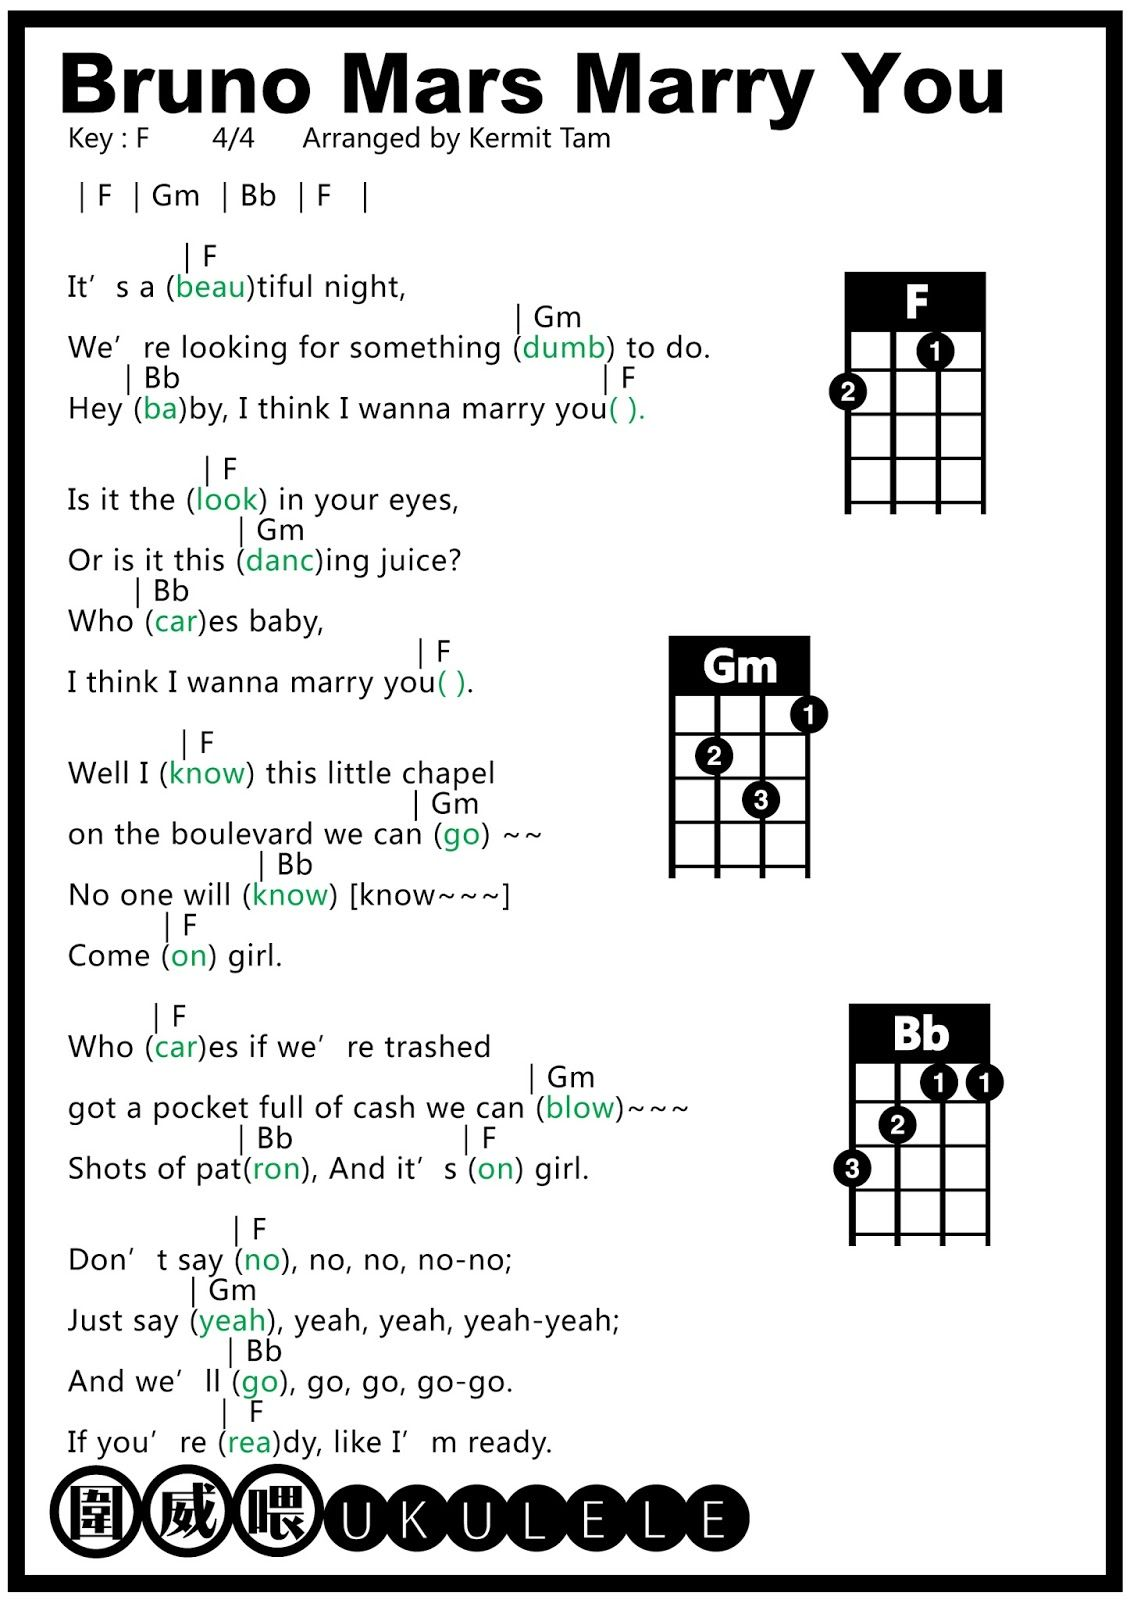 Looking for a girl like you lyrics country